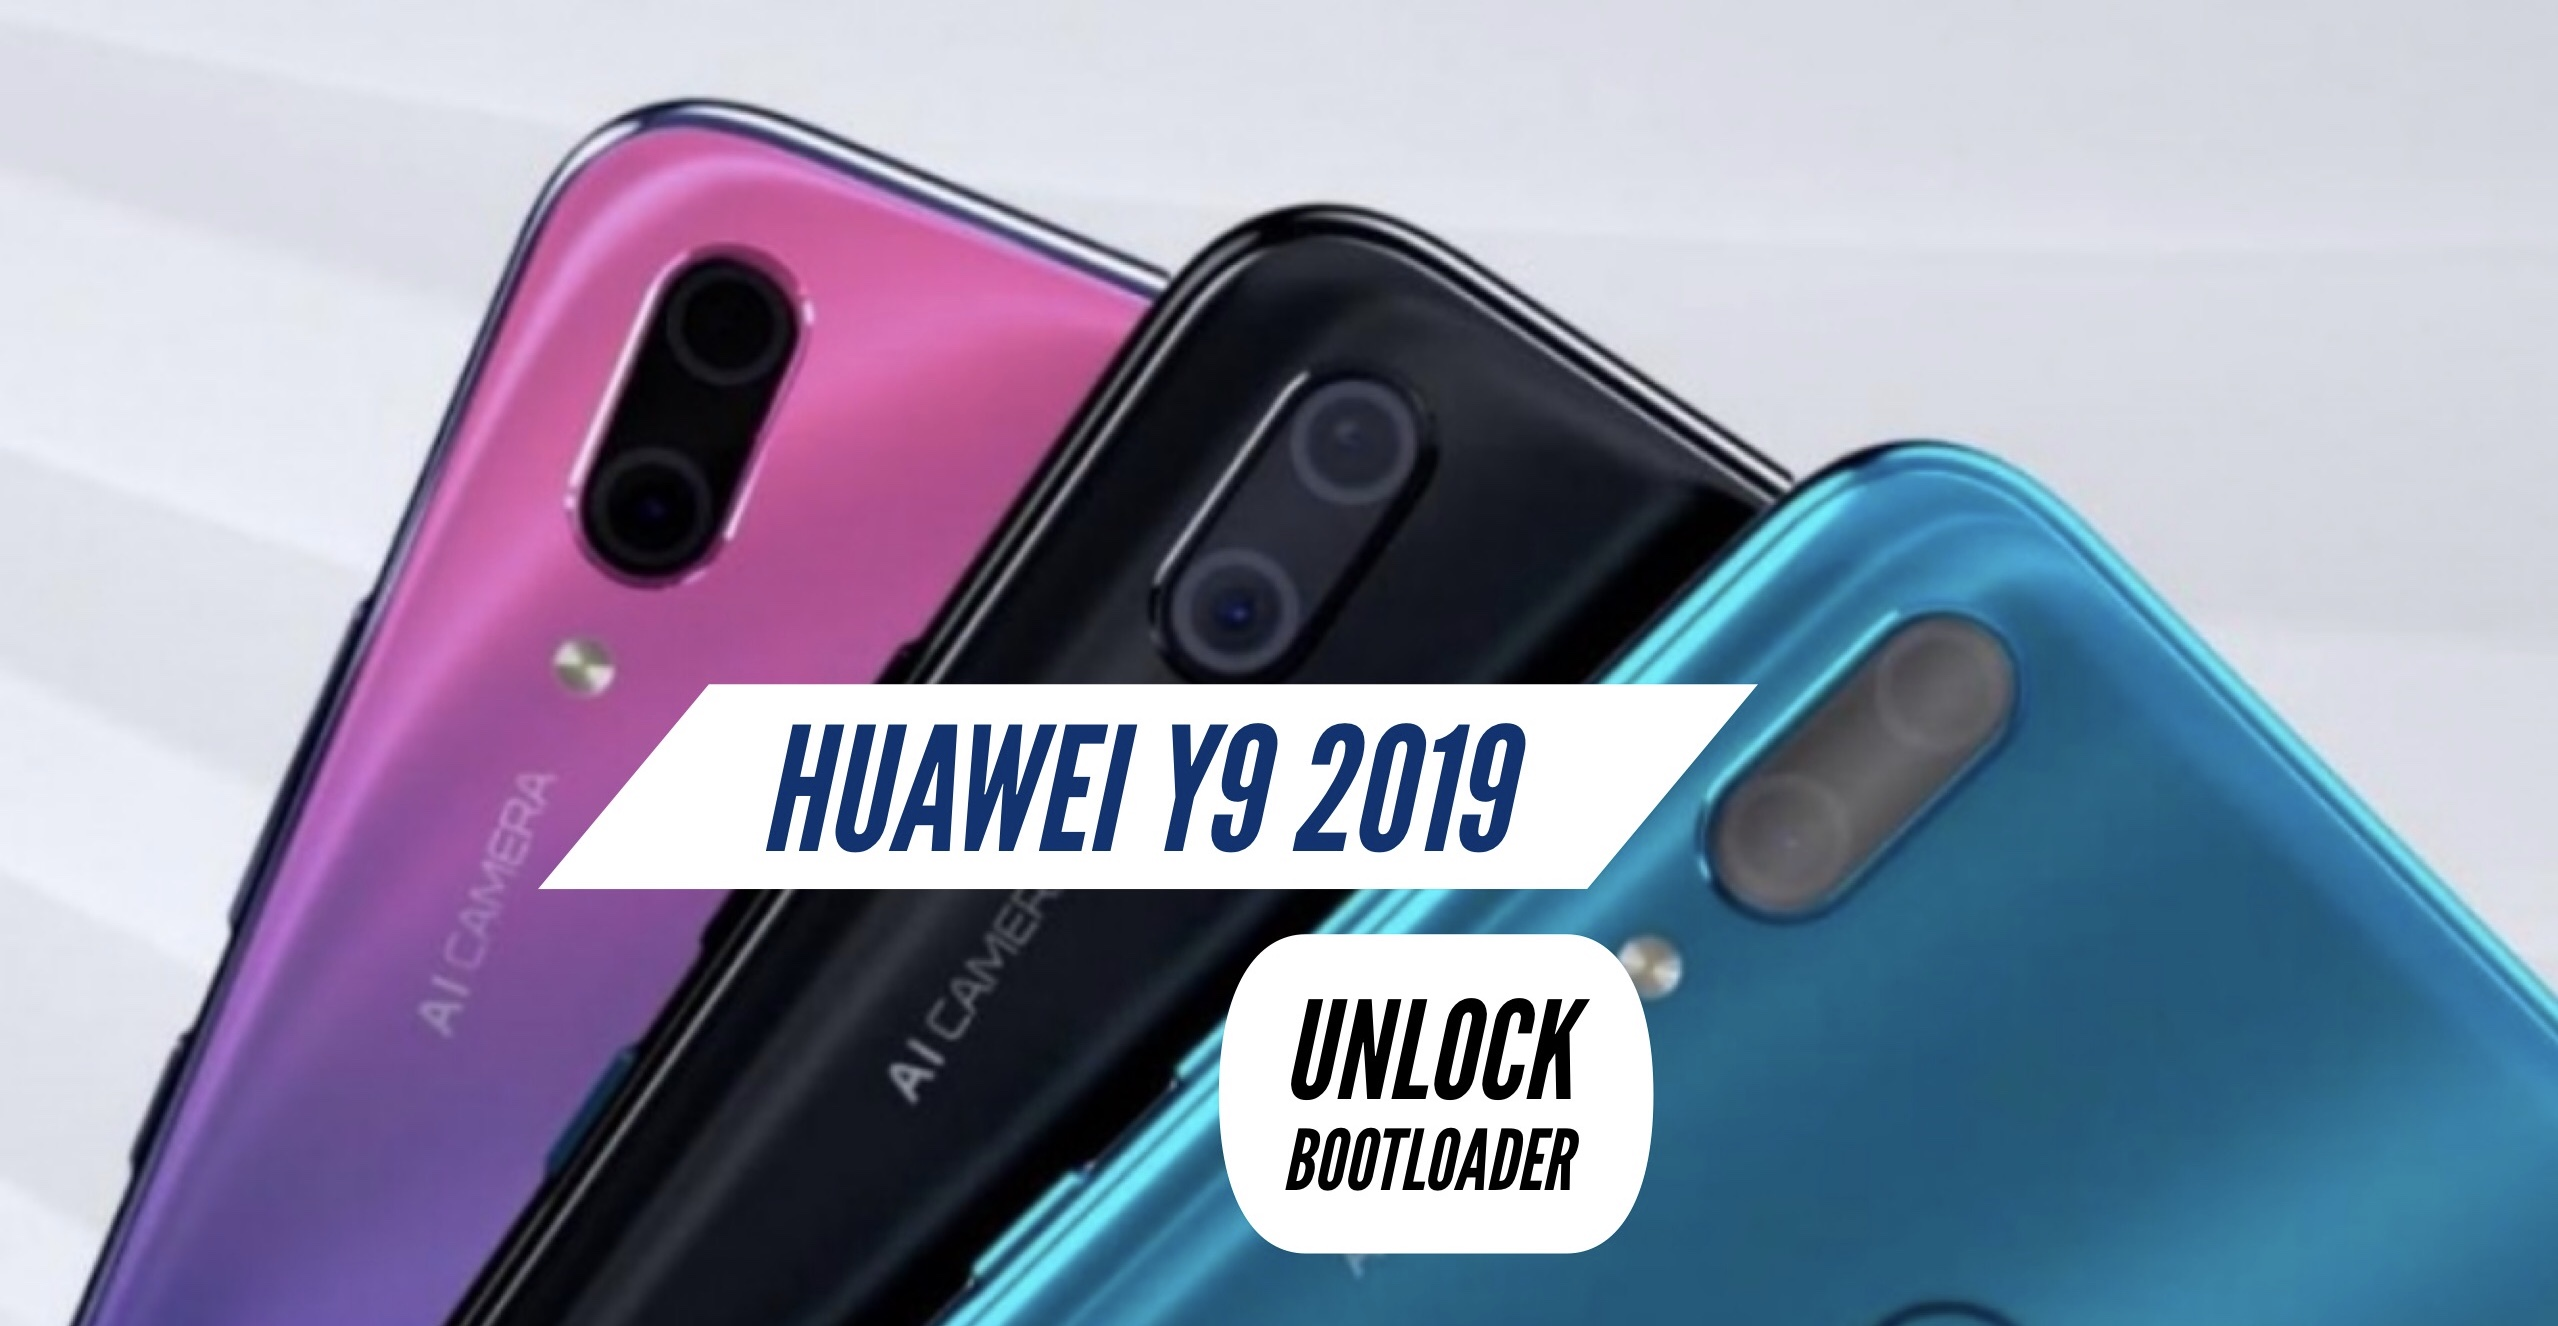 How to Unlock Bootloader on Huawei Y9 2019?